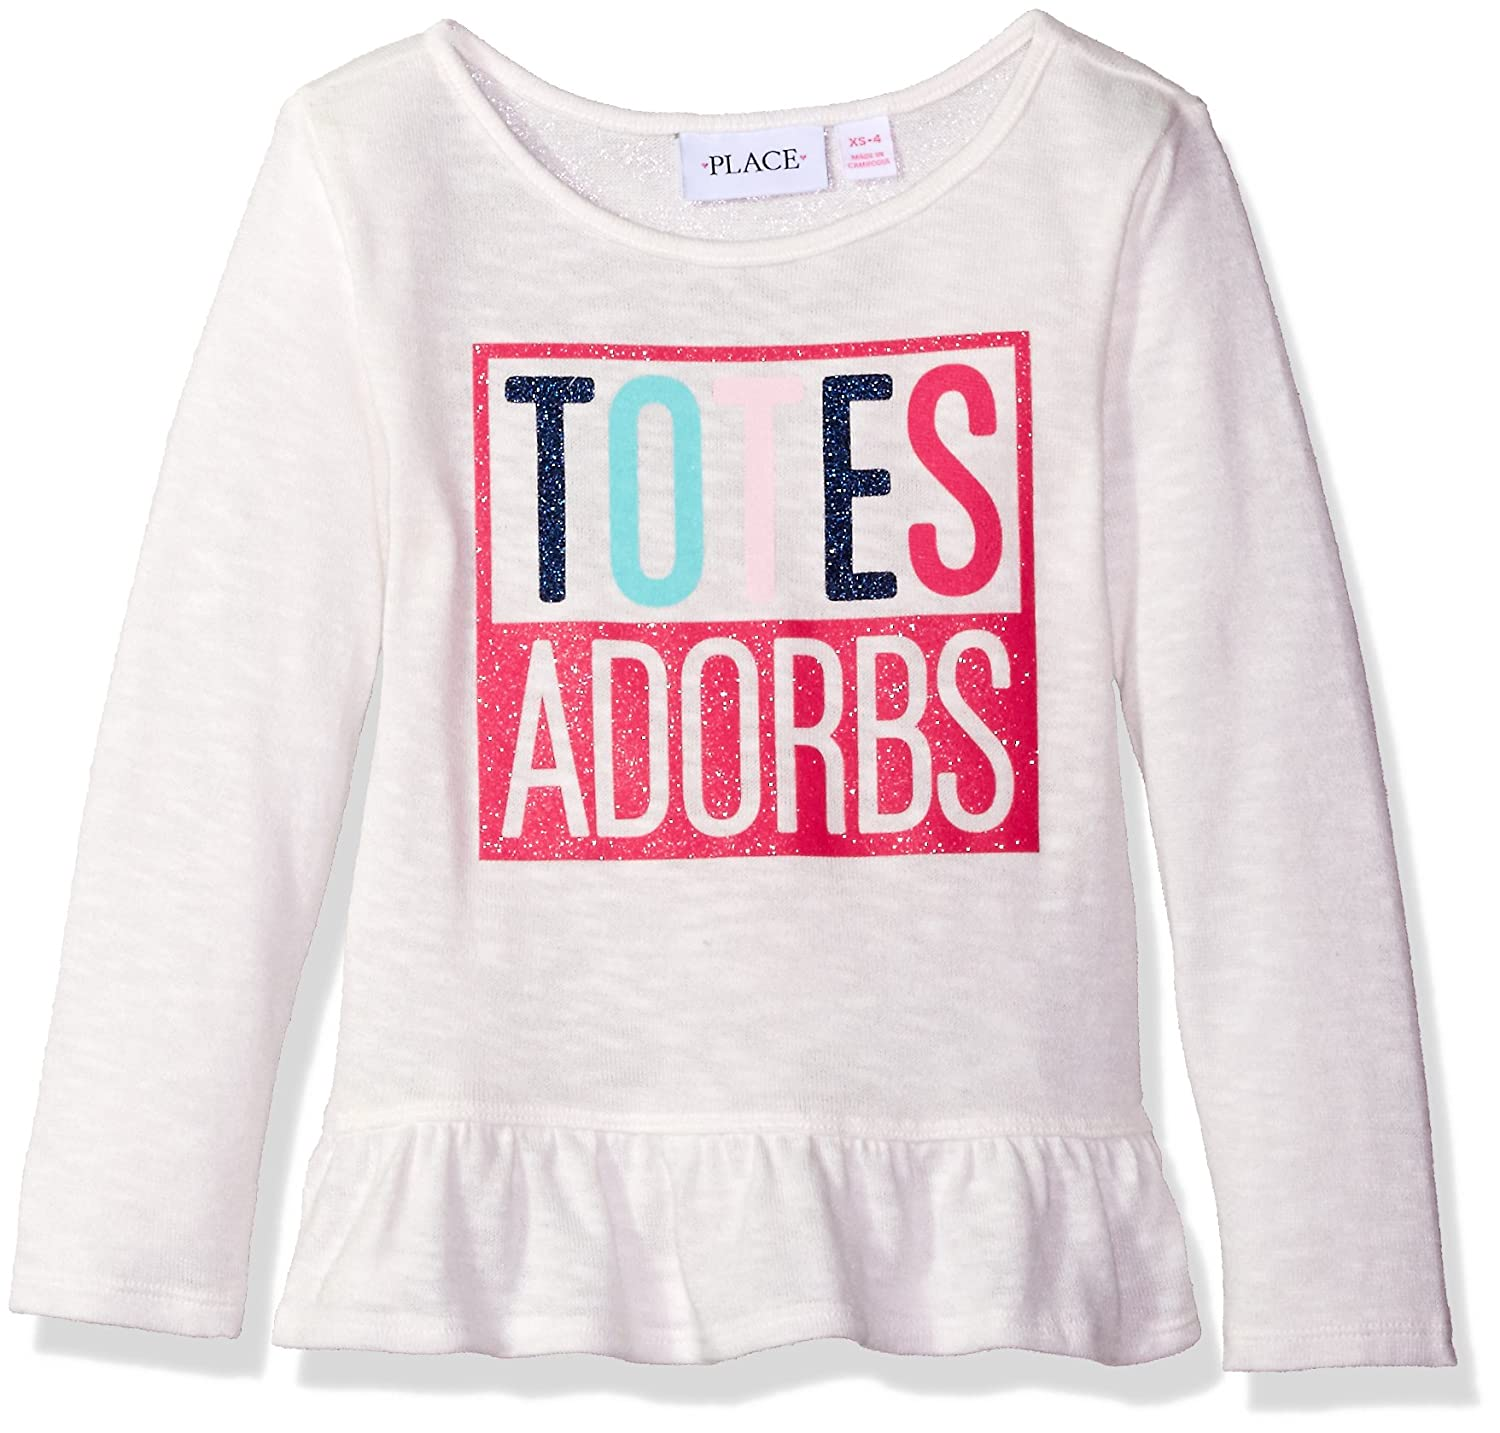 The Children's Place Girls' Peplum Graphic Knit Long Sleeve Top